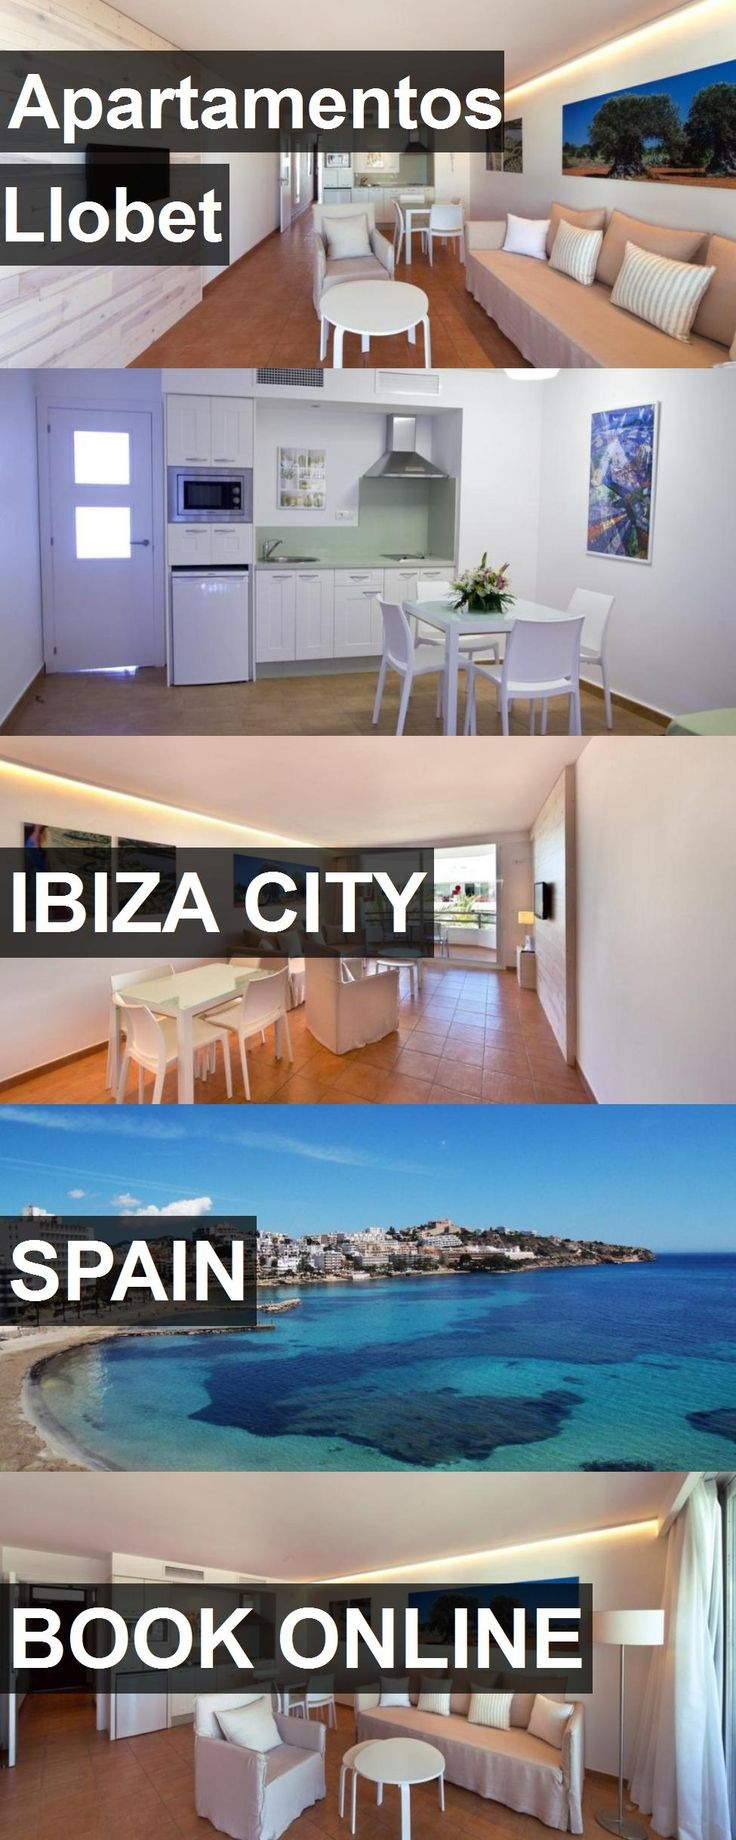 Hotel Apartamentos Llobet in Ibiza City, Spain. For more information, photos, reviews and best prices please follow the link. #Spain #IbizaCity #ApartamentosLlobet #hotel #travel #vacation